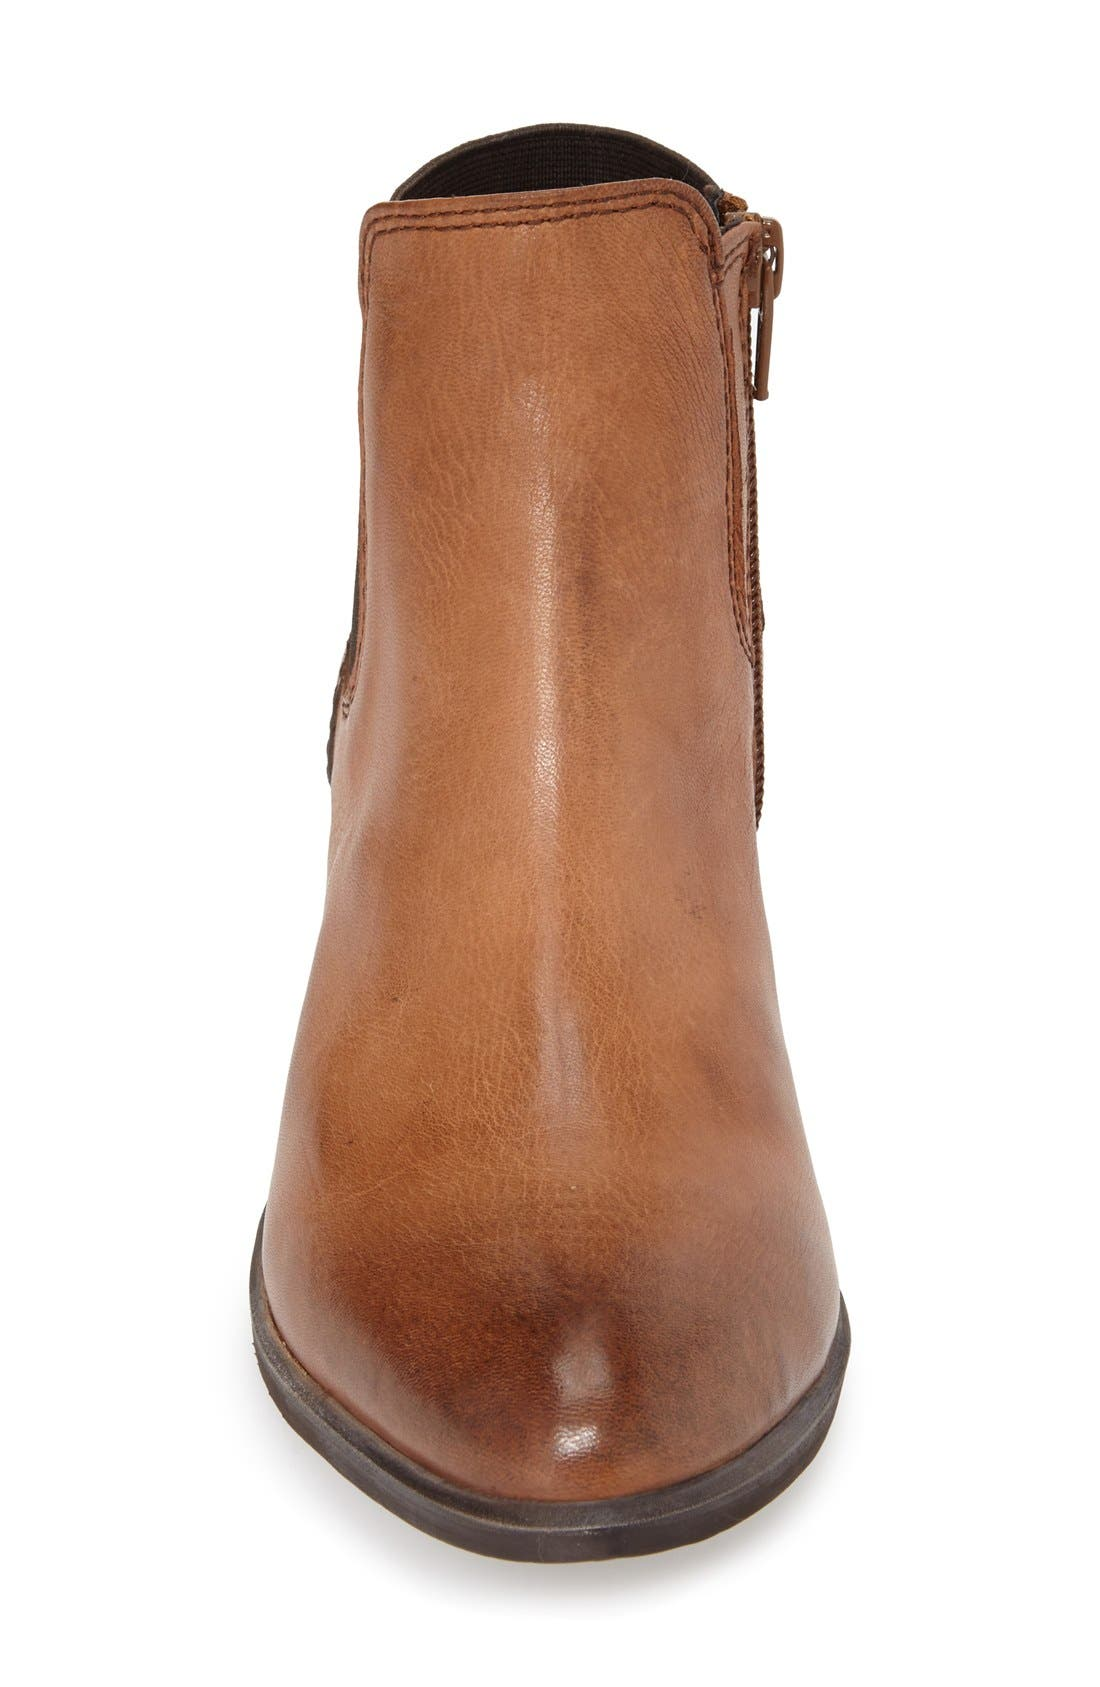 Alternate Image 3  - Steve Madden 'Rozamare' Leather Ankle Bootie (Women)